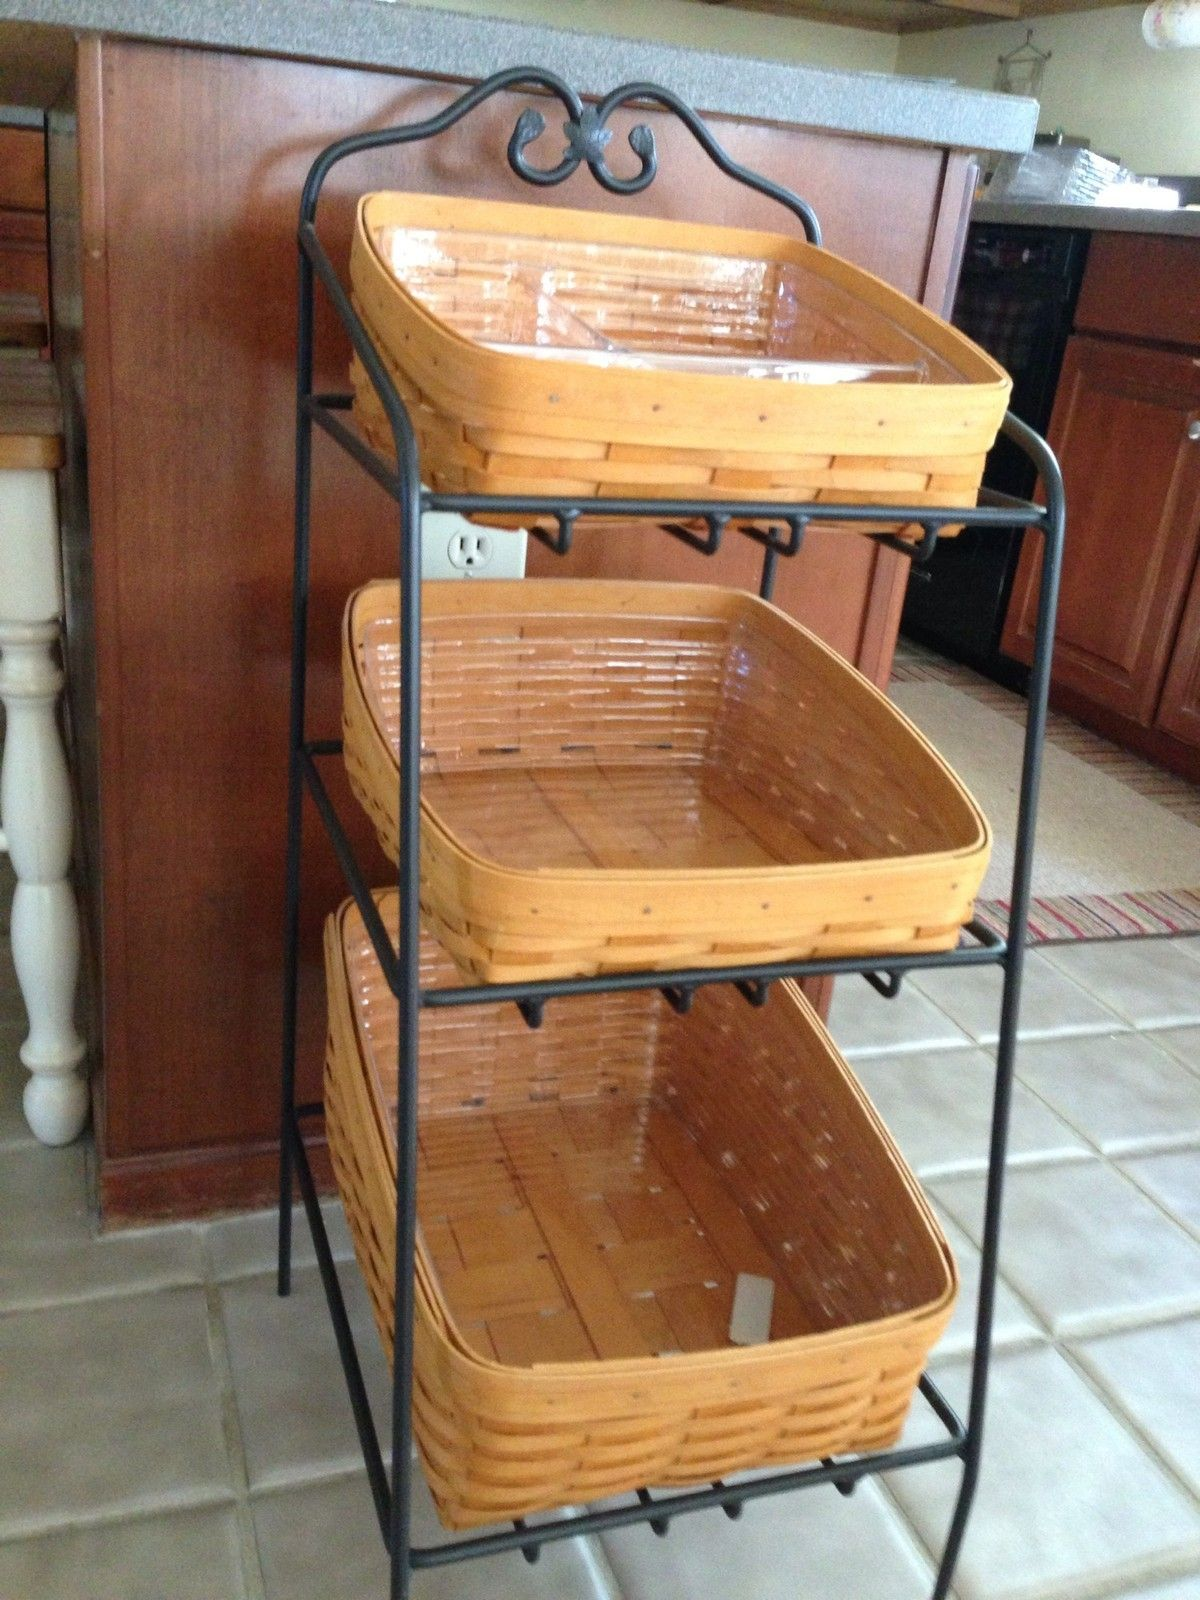 Longaberger Retired Wrought Iron Bin Stand with 3 Bin ... on Iron Stand Ideas  id=32367